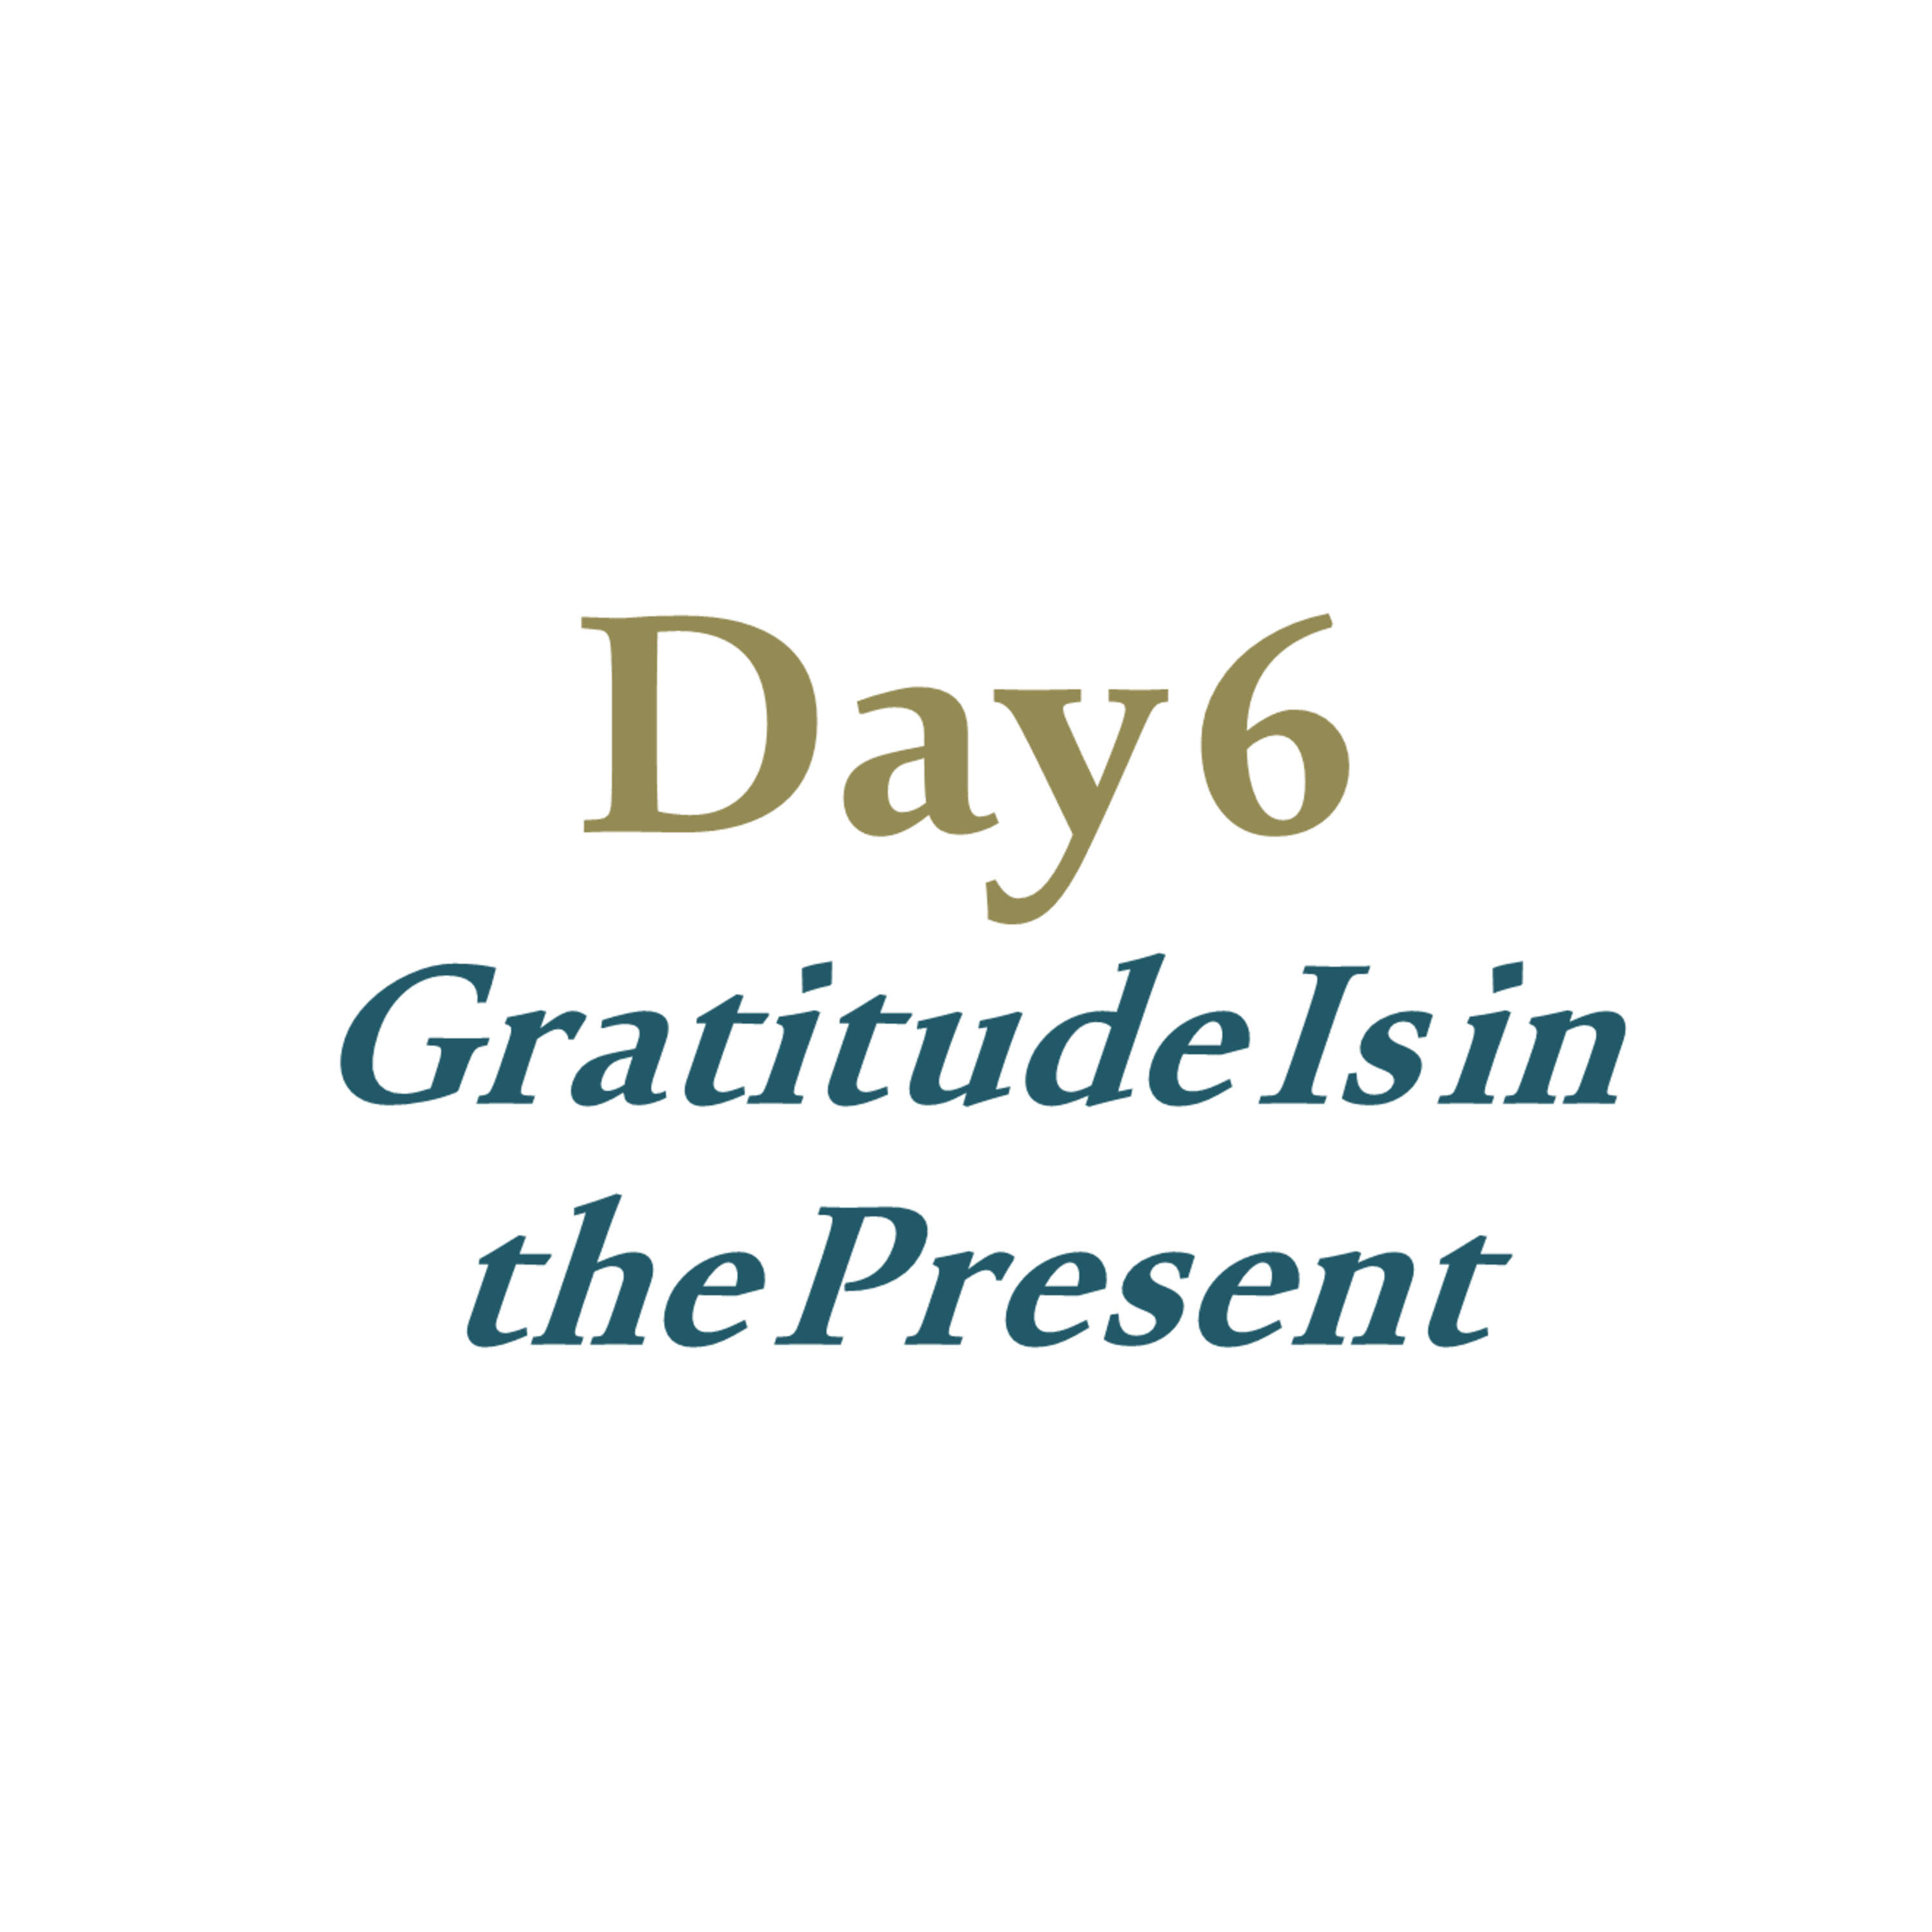 Day 6 - Gratitude Is in the Present